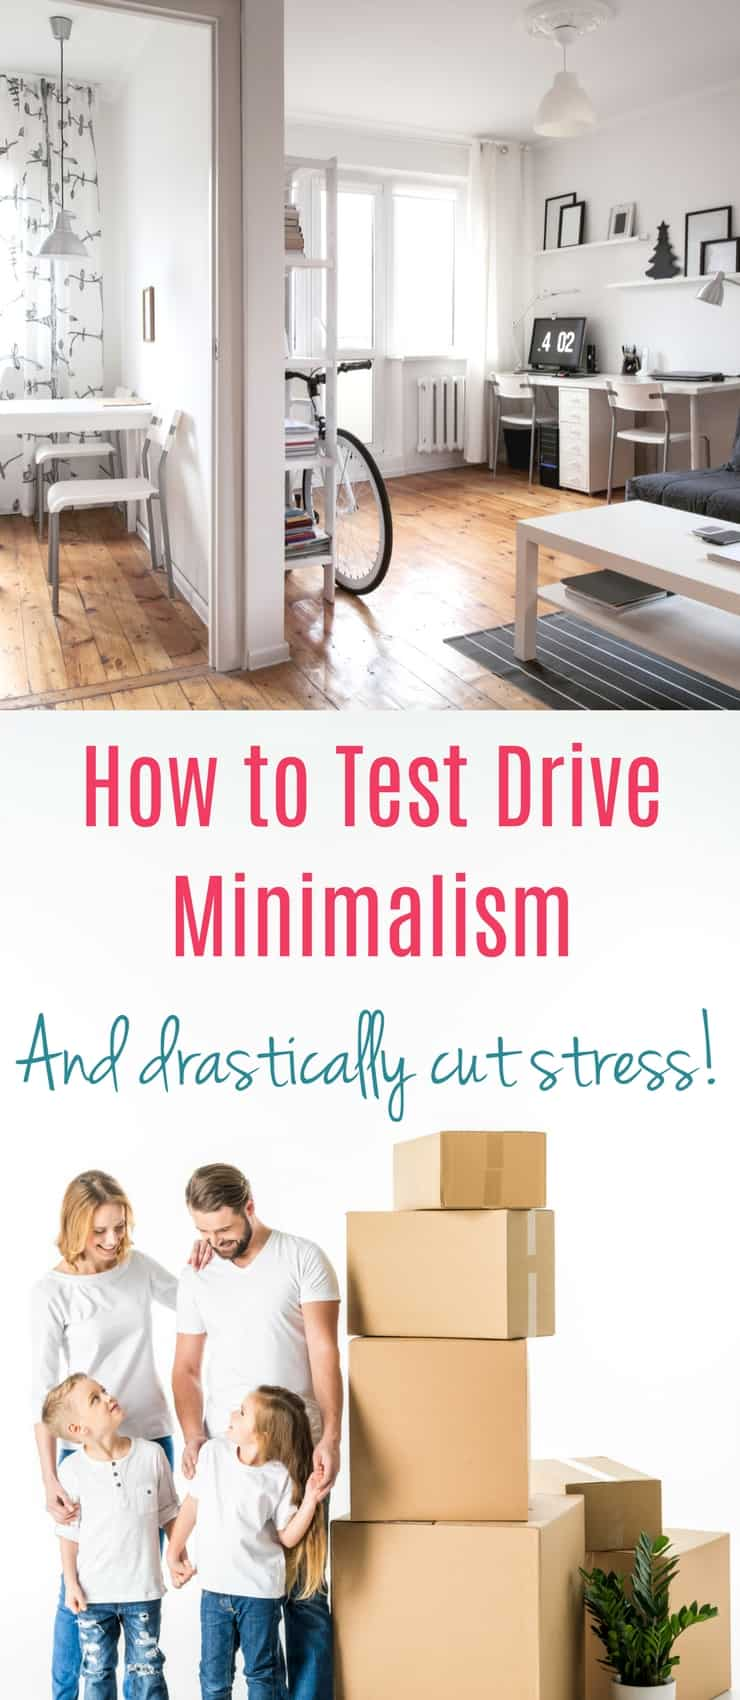 Have you ever considered becoming minimalist? Minimalism is the ultimate in simple living, but it seems so restrictive that most people feel they could never stick to it. Here is a genius way to test drive minimalism to see if it could work for you! Why didn't I think of this?